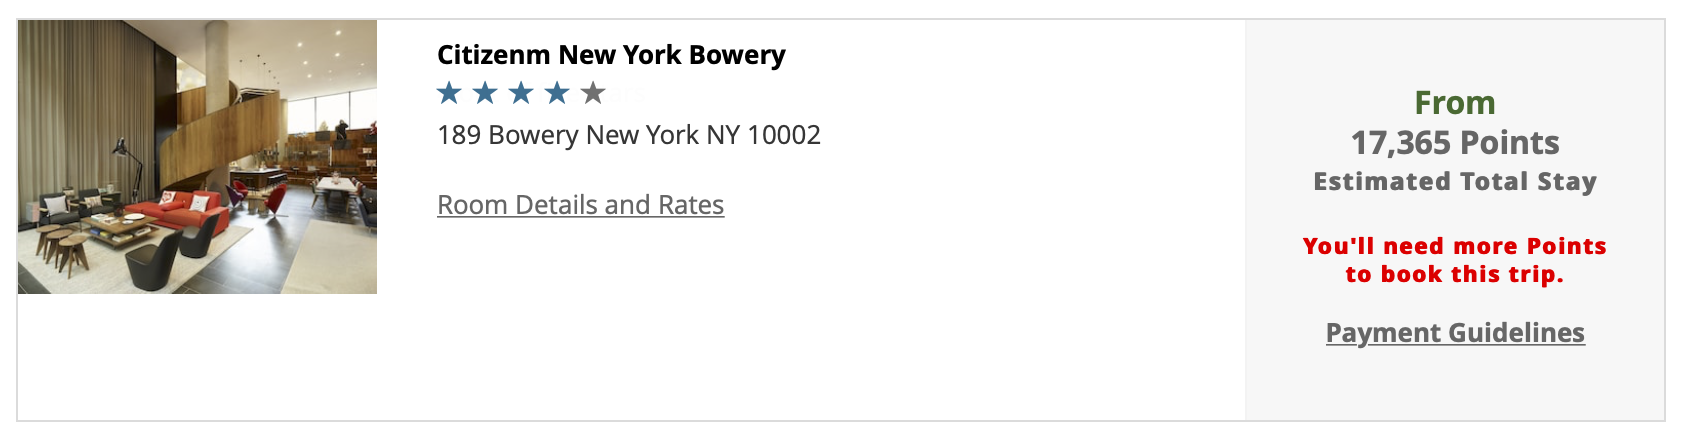 Booking CitizenM Bowery with Rapid Rewards points